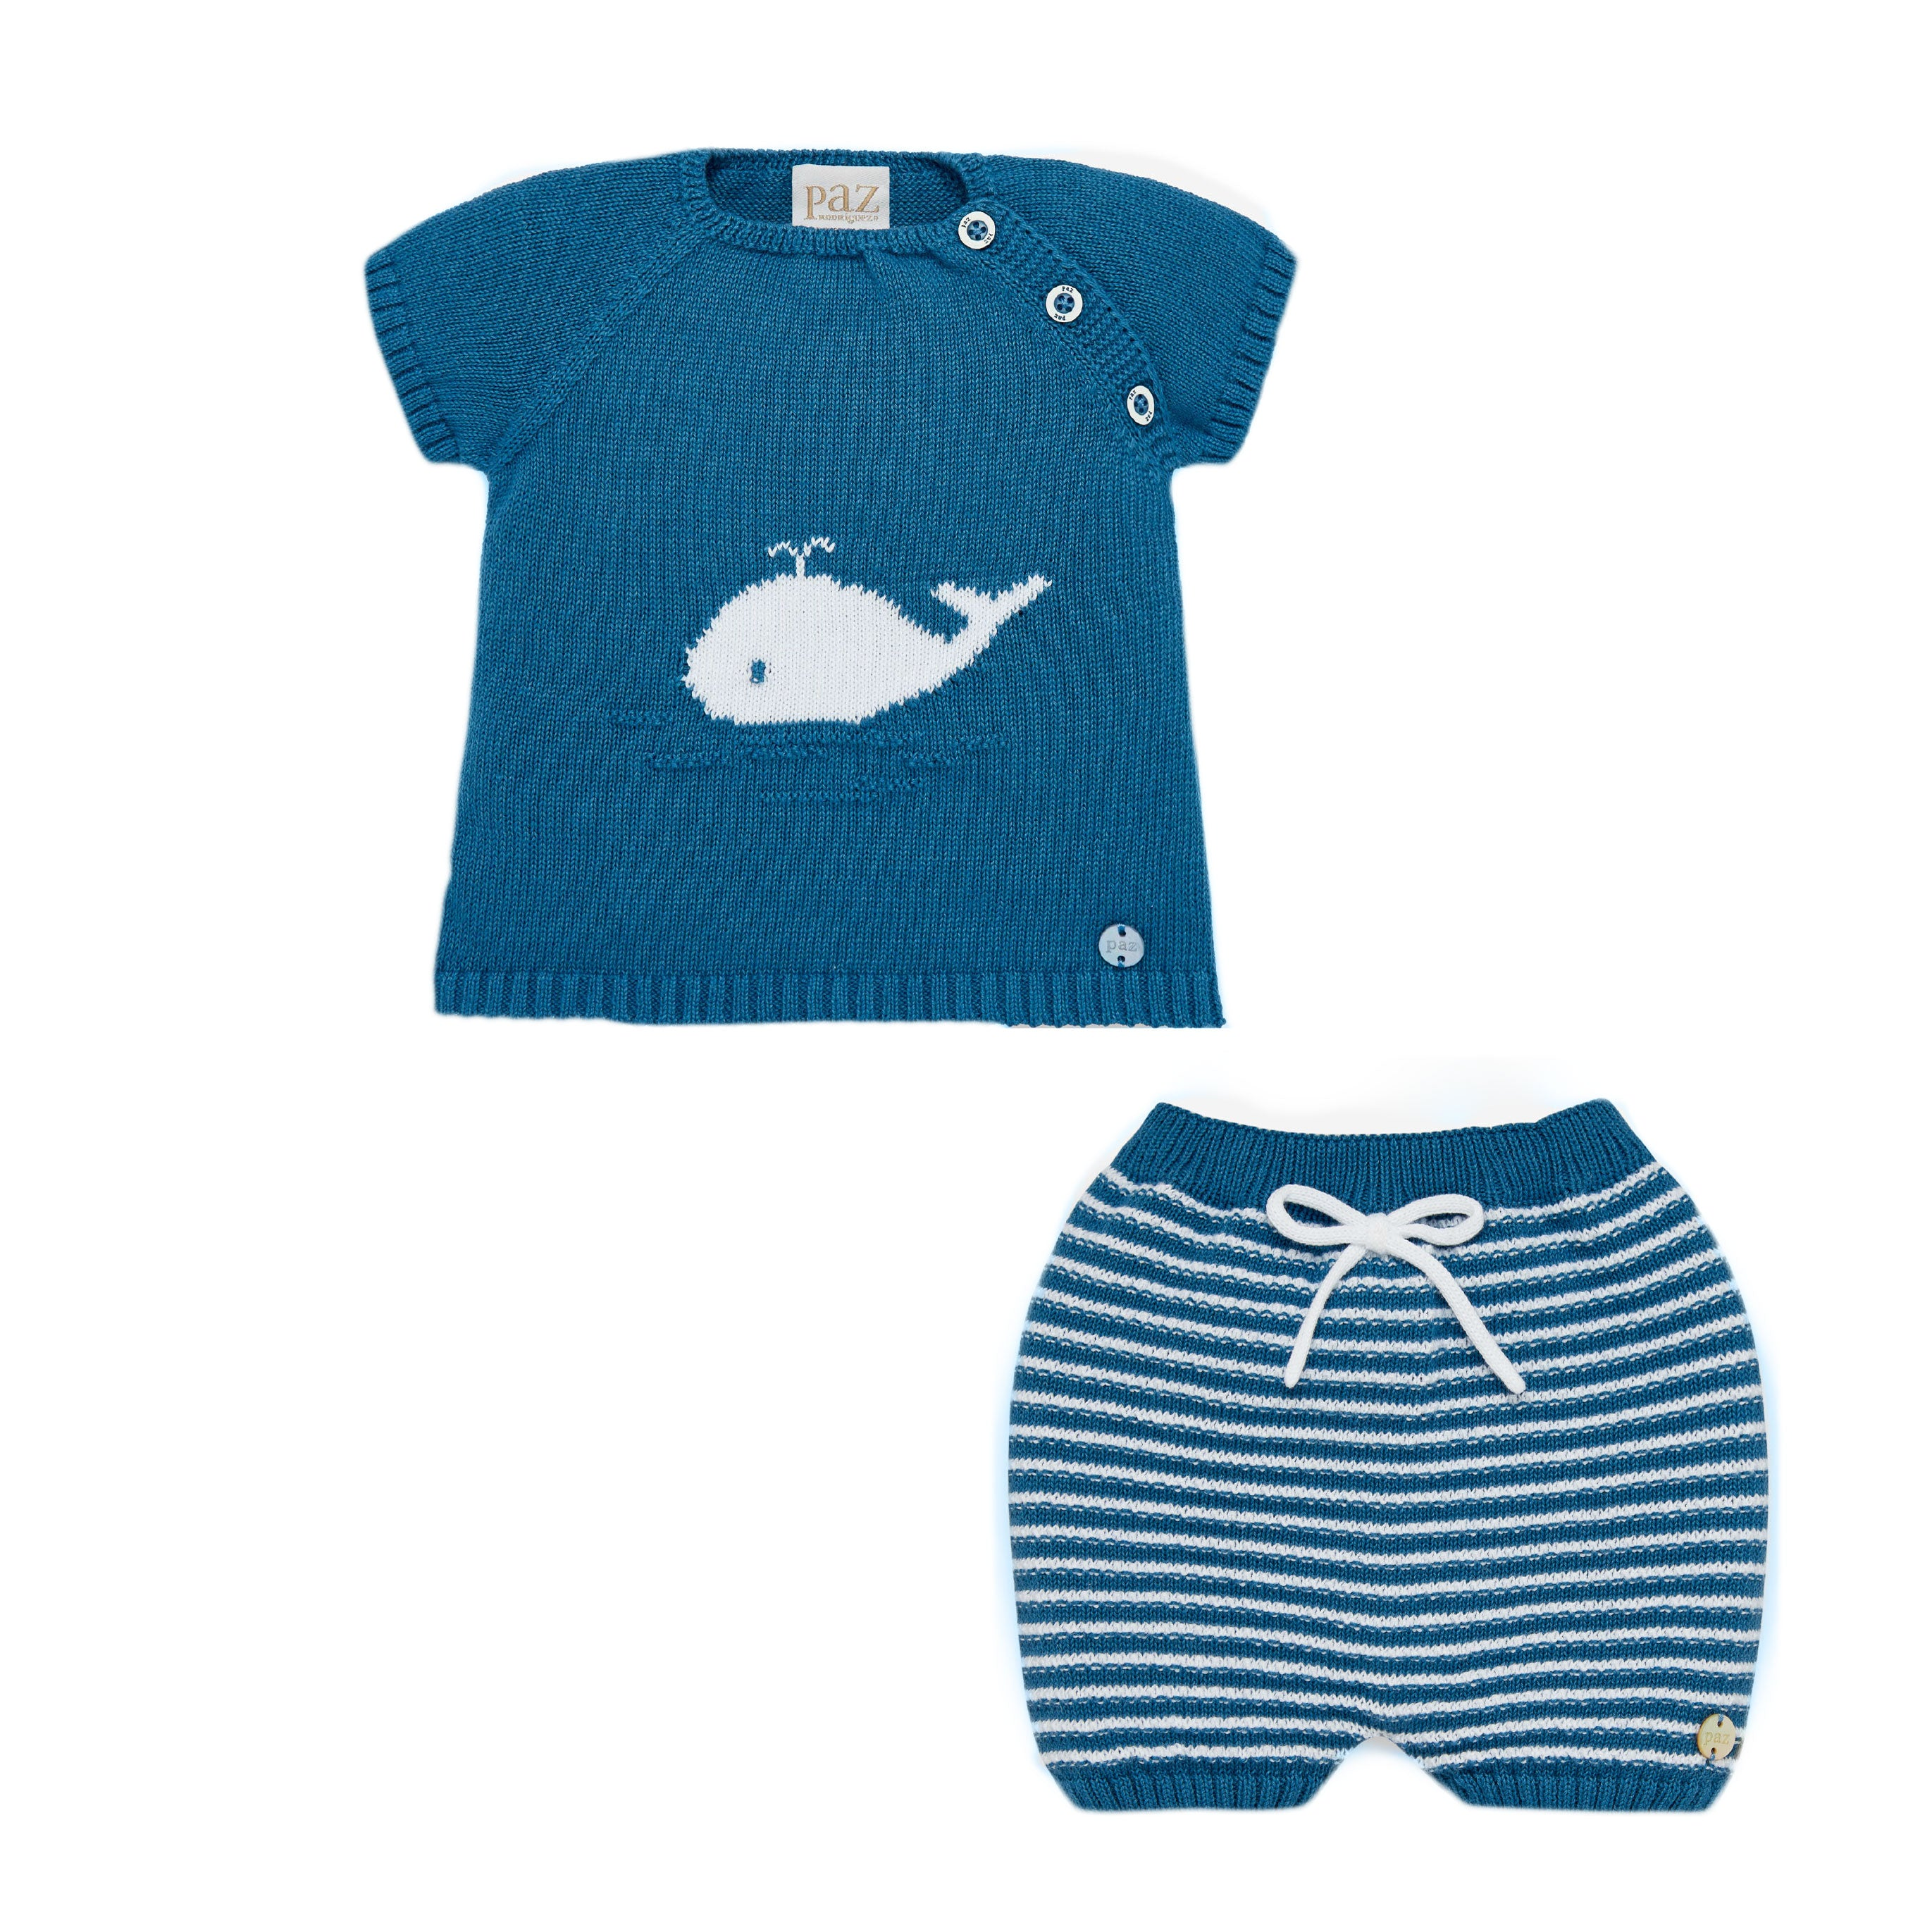 Paz Rodriguez baby boy gift available at Bonjour Baby Baskets, luxury baby gifts